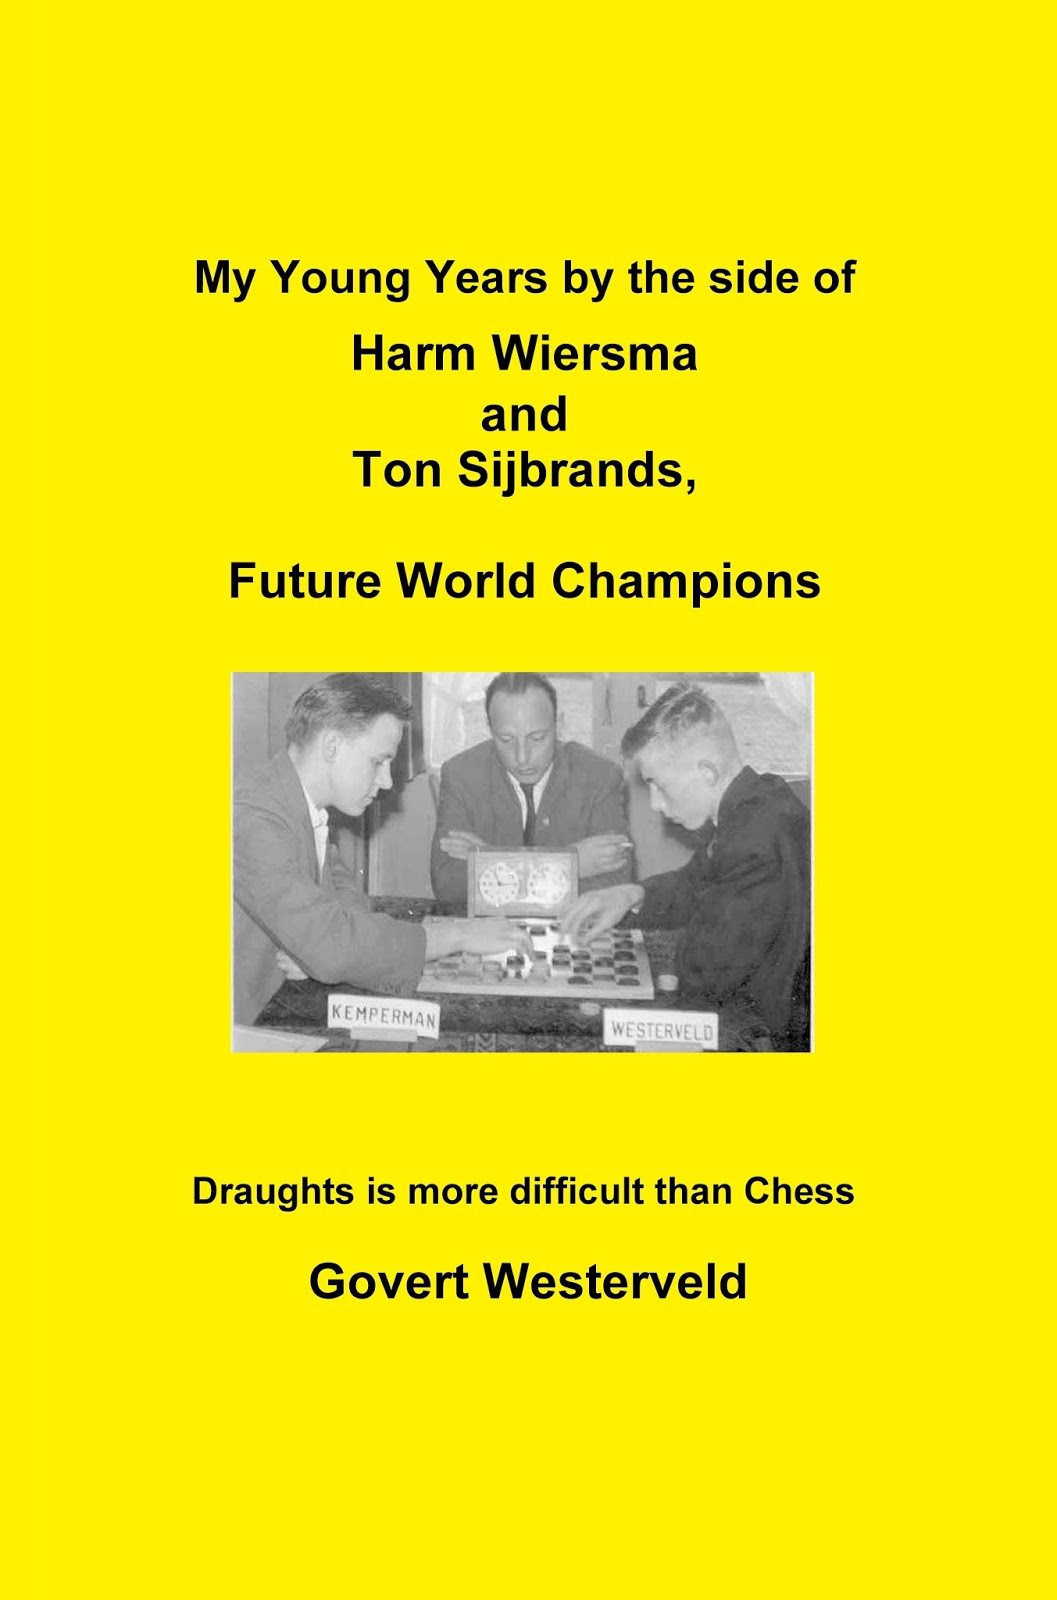 History of draughts checkers at the end of 2017 a draughts player asked me to have translations of some of my spanish books that deal with the history of draughts fandeluxe Images